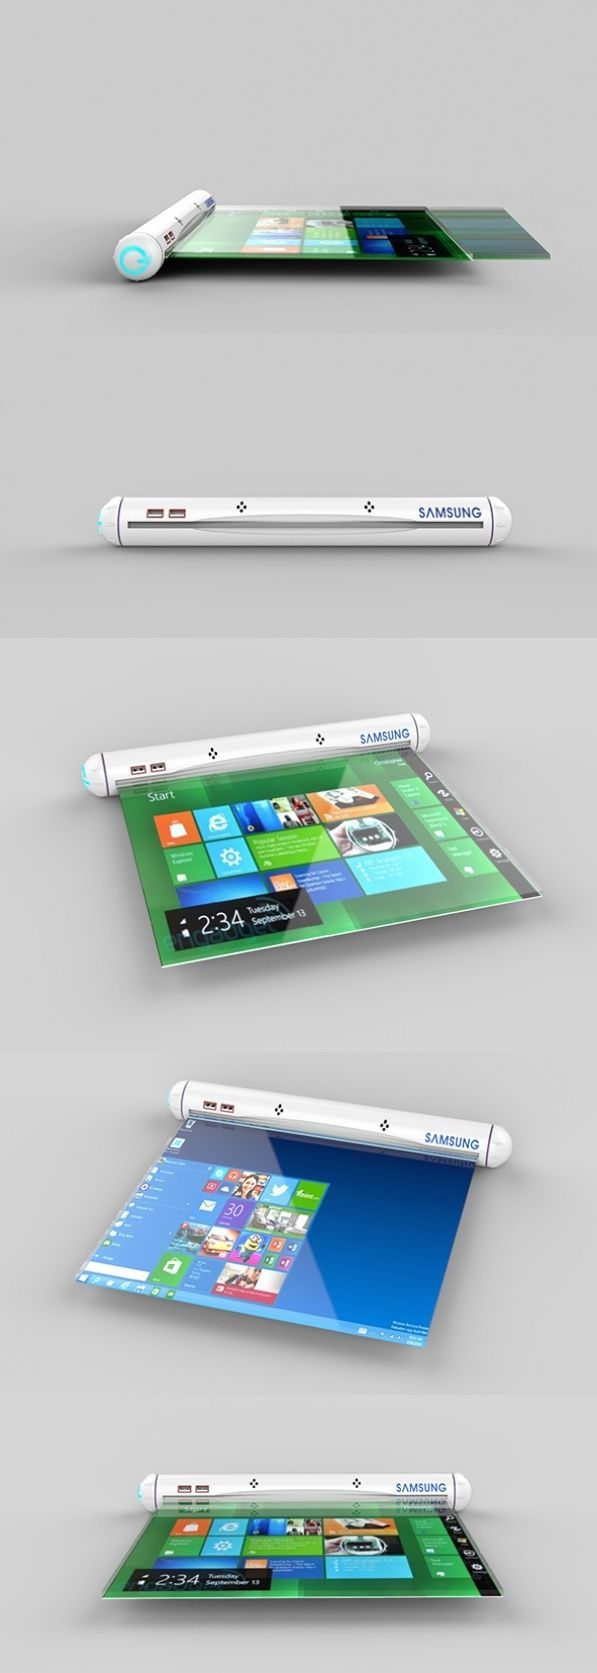 The Samsung Flexible Roll applies future #flex tech to create the most portable tablet laptop